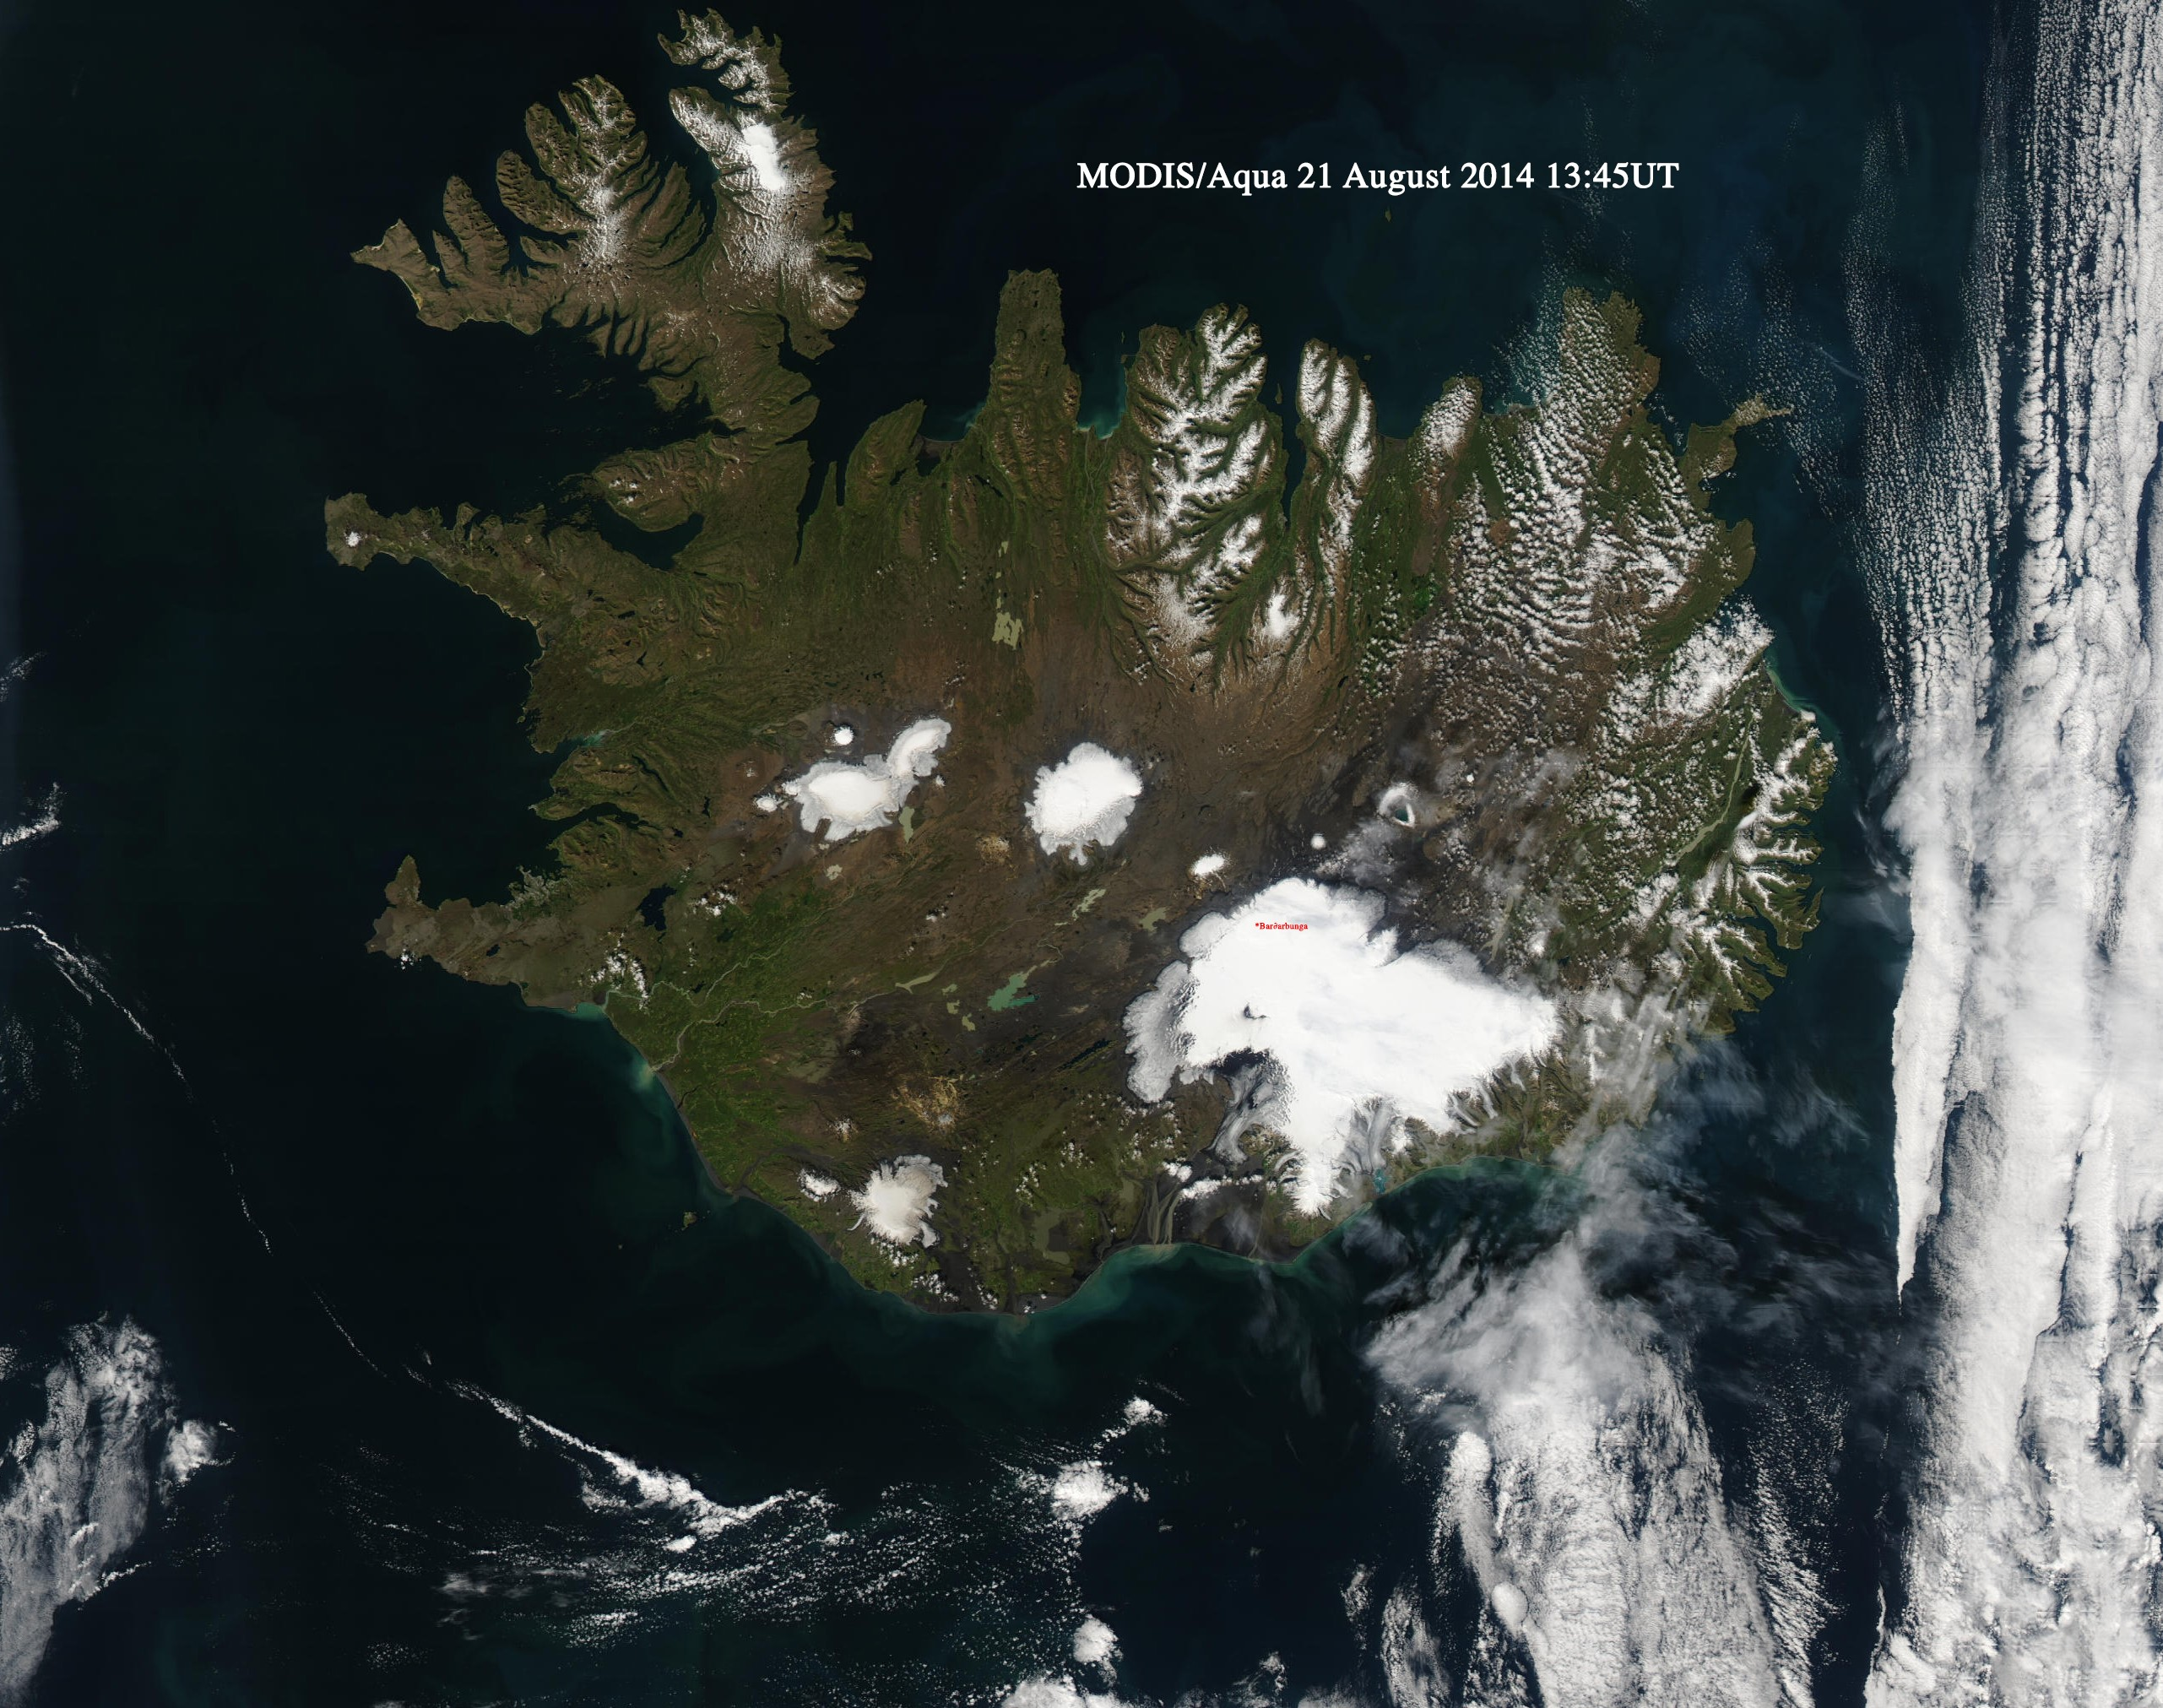 MODIS / Aqua Image of Iceland on 21st August 2014, acquired at 13:50 UTC.